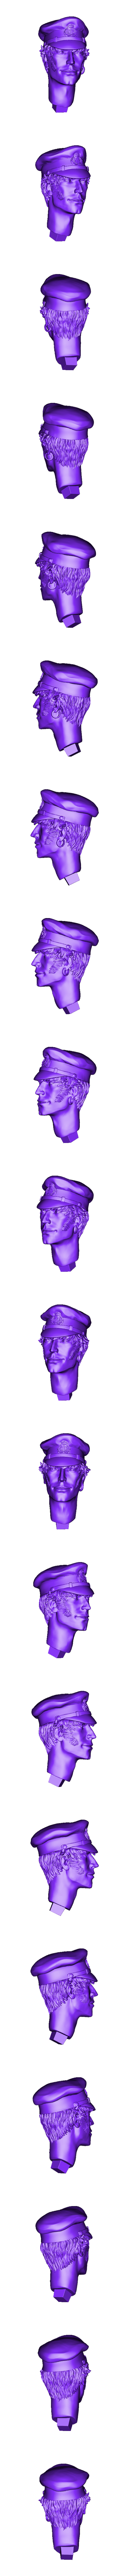 Corto_head.stl Download free STL file Corto Maltese • 3D printer design, tutus